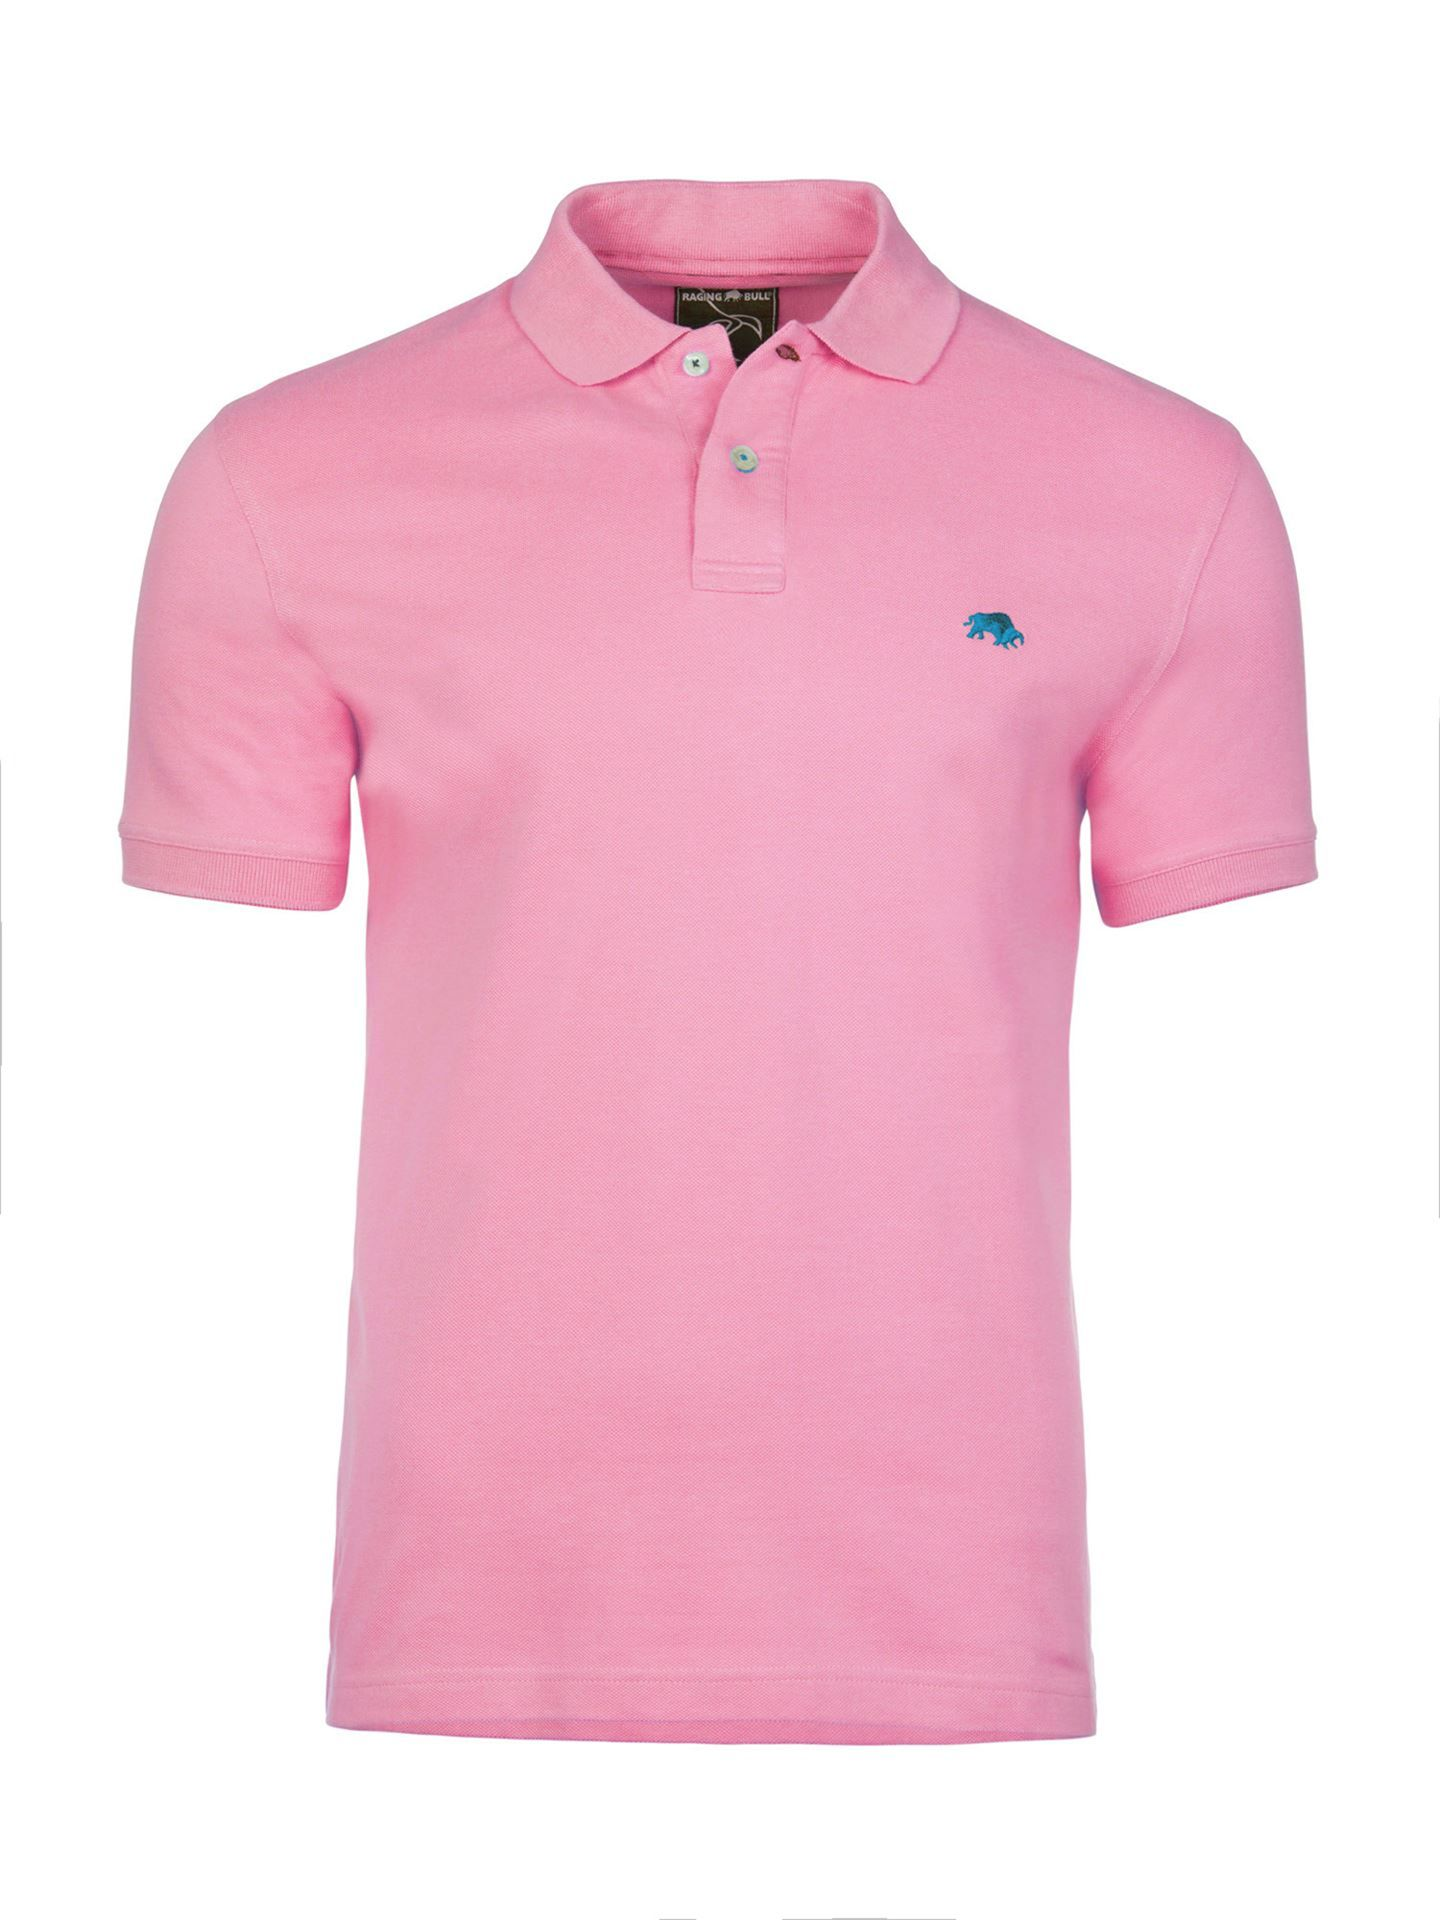 Men's Raging Bull Fly Fit Plain Polo, Pink